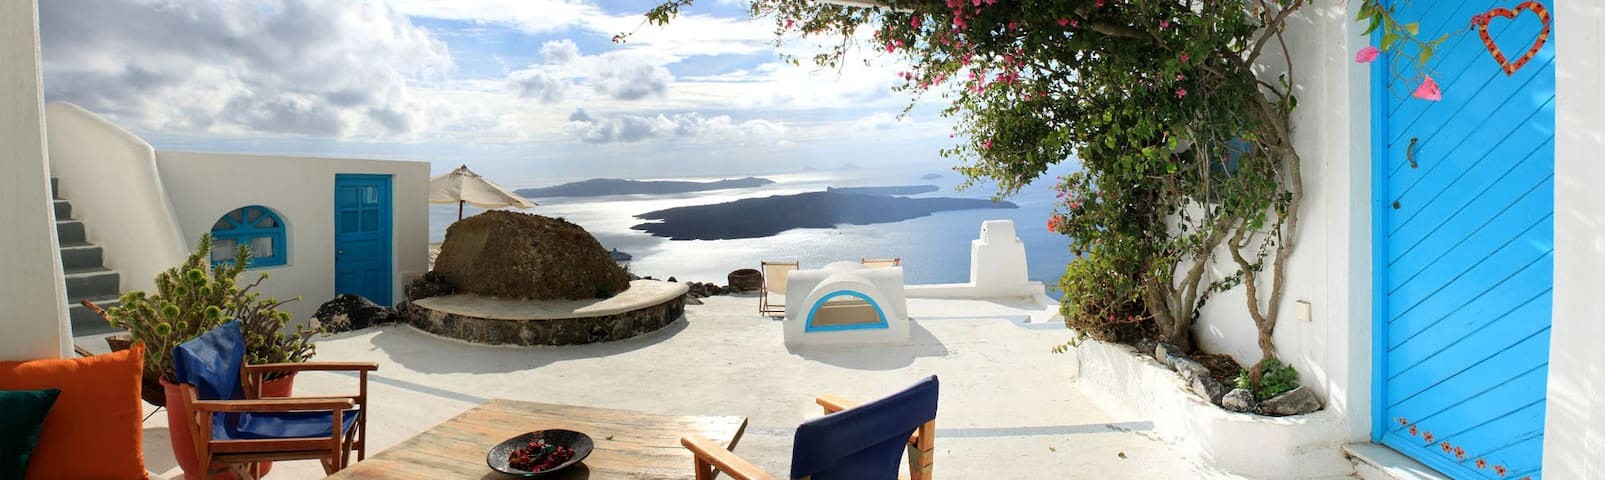 Traditional,Good view,Location!!! - Thira - Maison